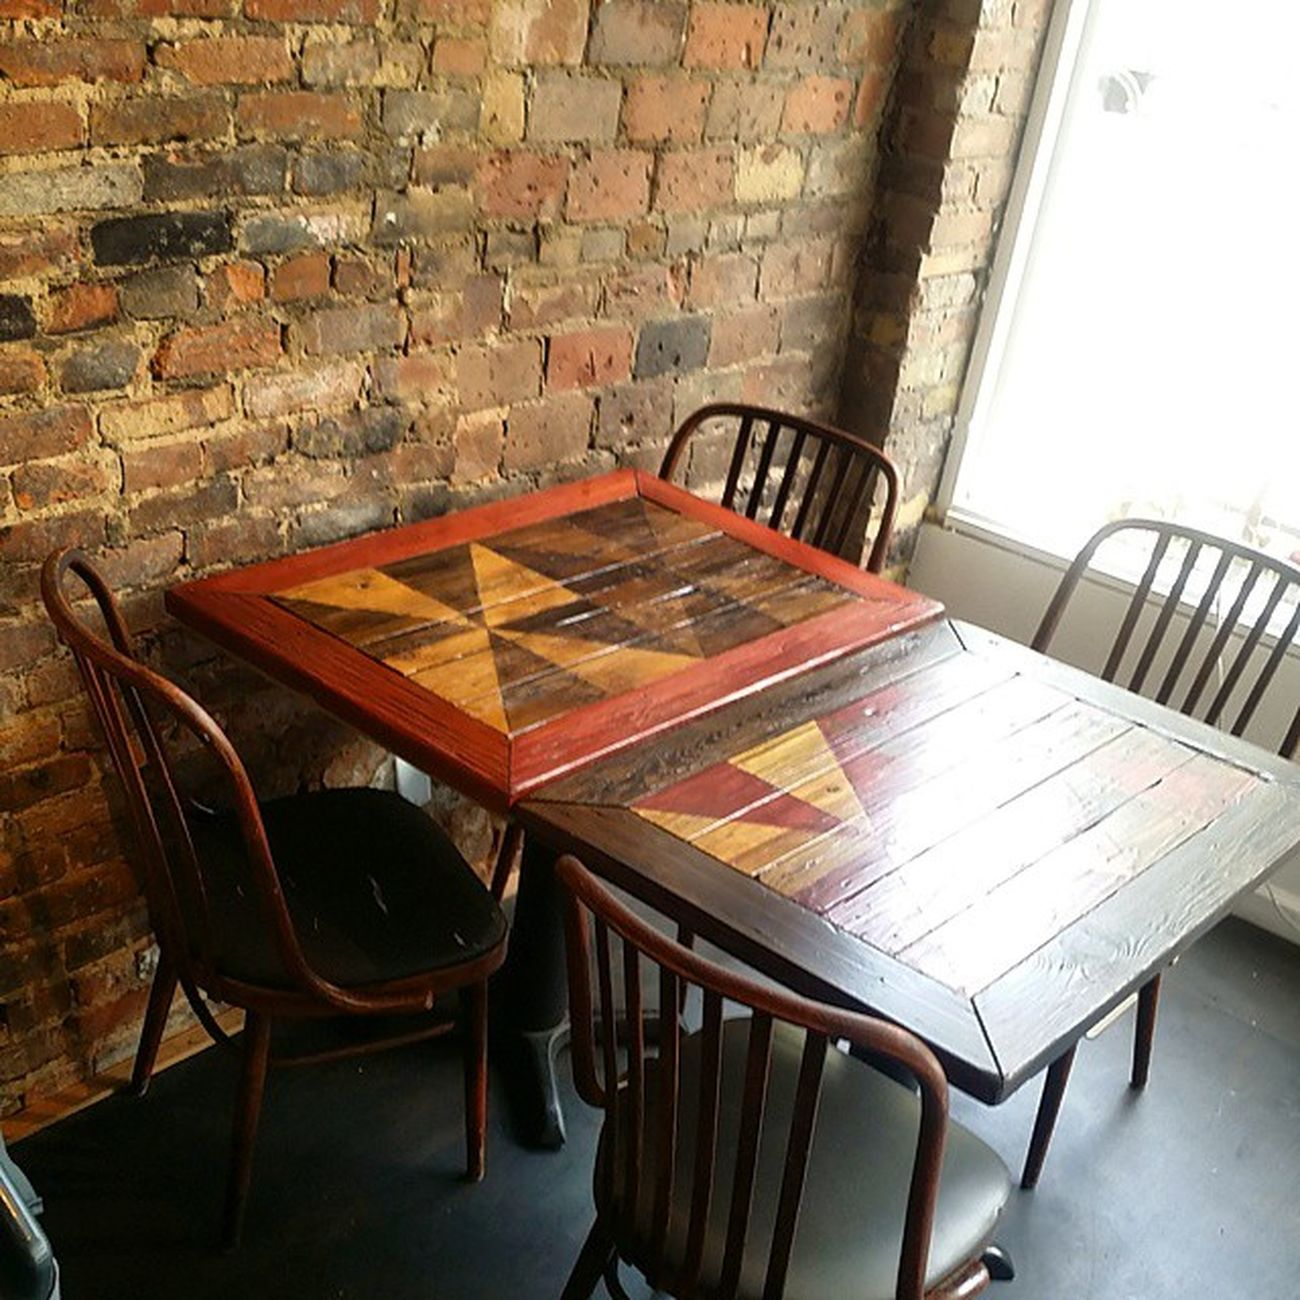 Next round of table deliveries at @parkvine ! Rustic tables to order using reclaimed wood - want one? The stain treatments are custom to your specs. Hingestore Homedecor Parkvine Rustic reclaimedwood table customwork